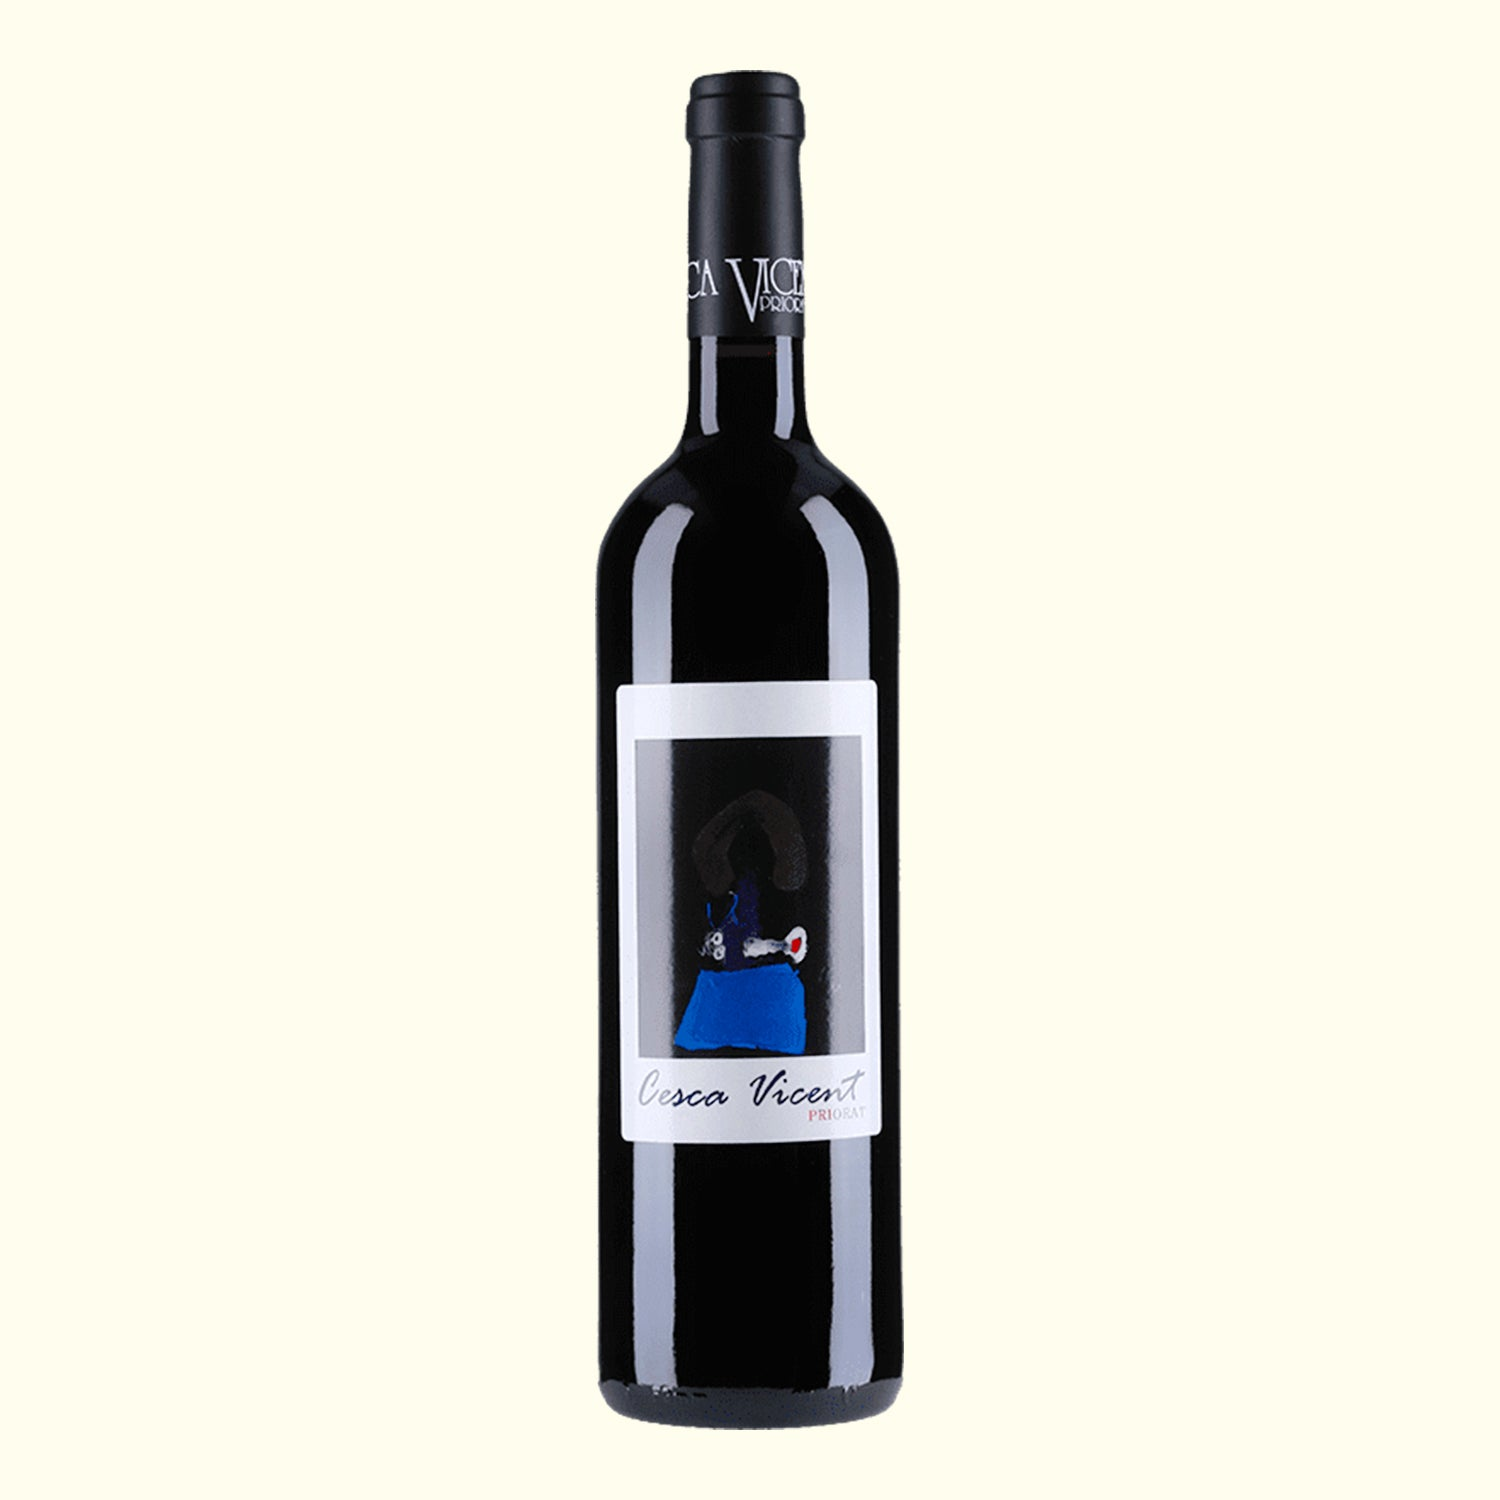 Celler Cesca Vicent, Priorat 2017